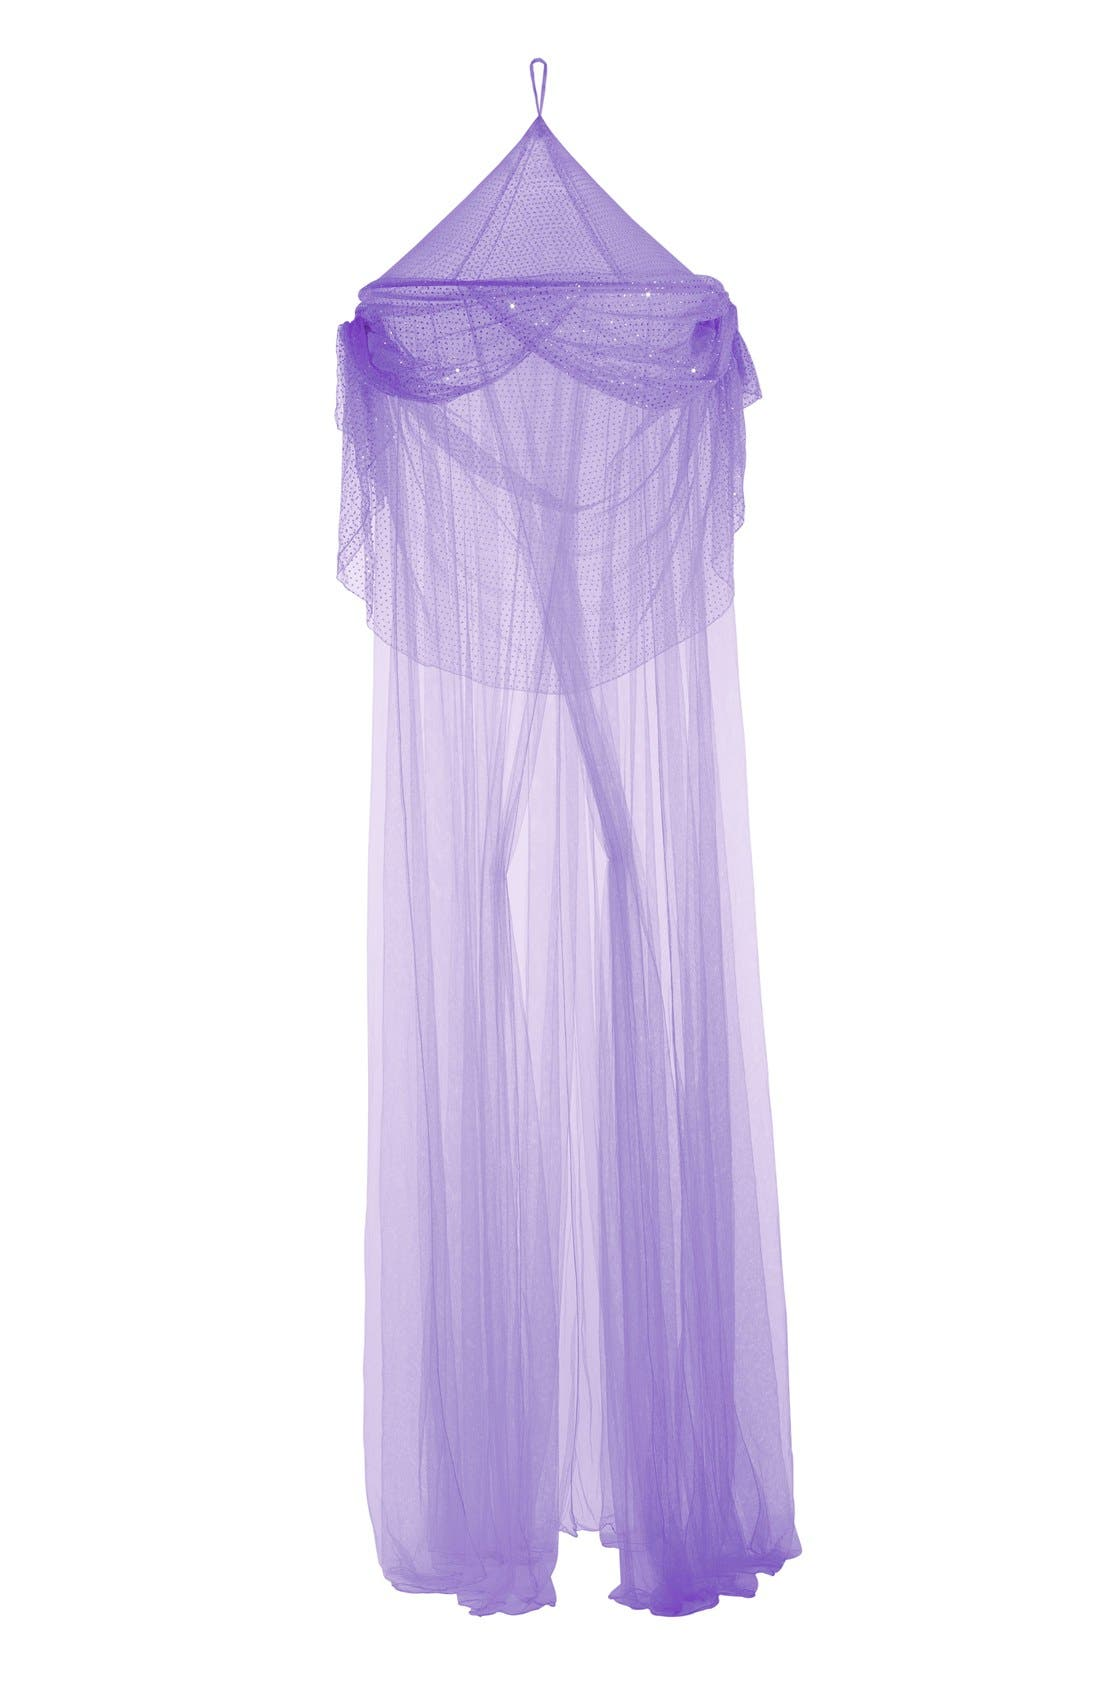 3C4G 'Purple SparkleTastic' Bed Canopy